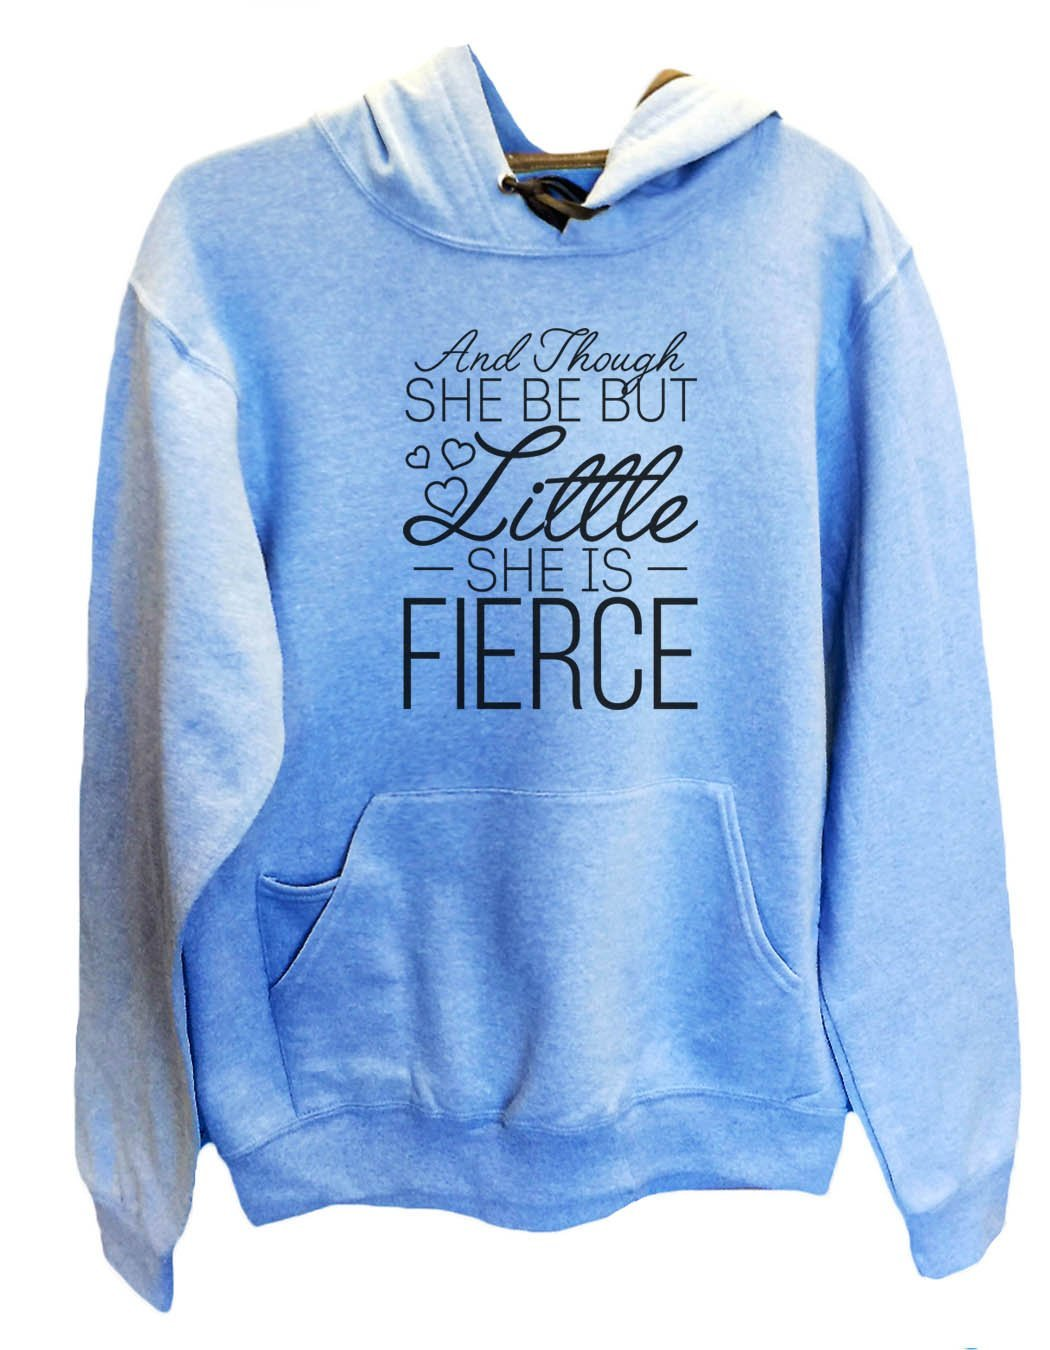 UNISEX HOODIE - And Though She Be But Little She Is Fierce - FUNNY MENS AND WOMENS HOODED SWEATSHIRTS - 2144 Funny Shirt Small / North Carolina Blue